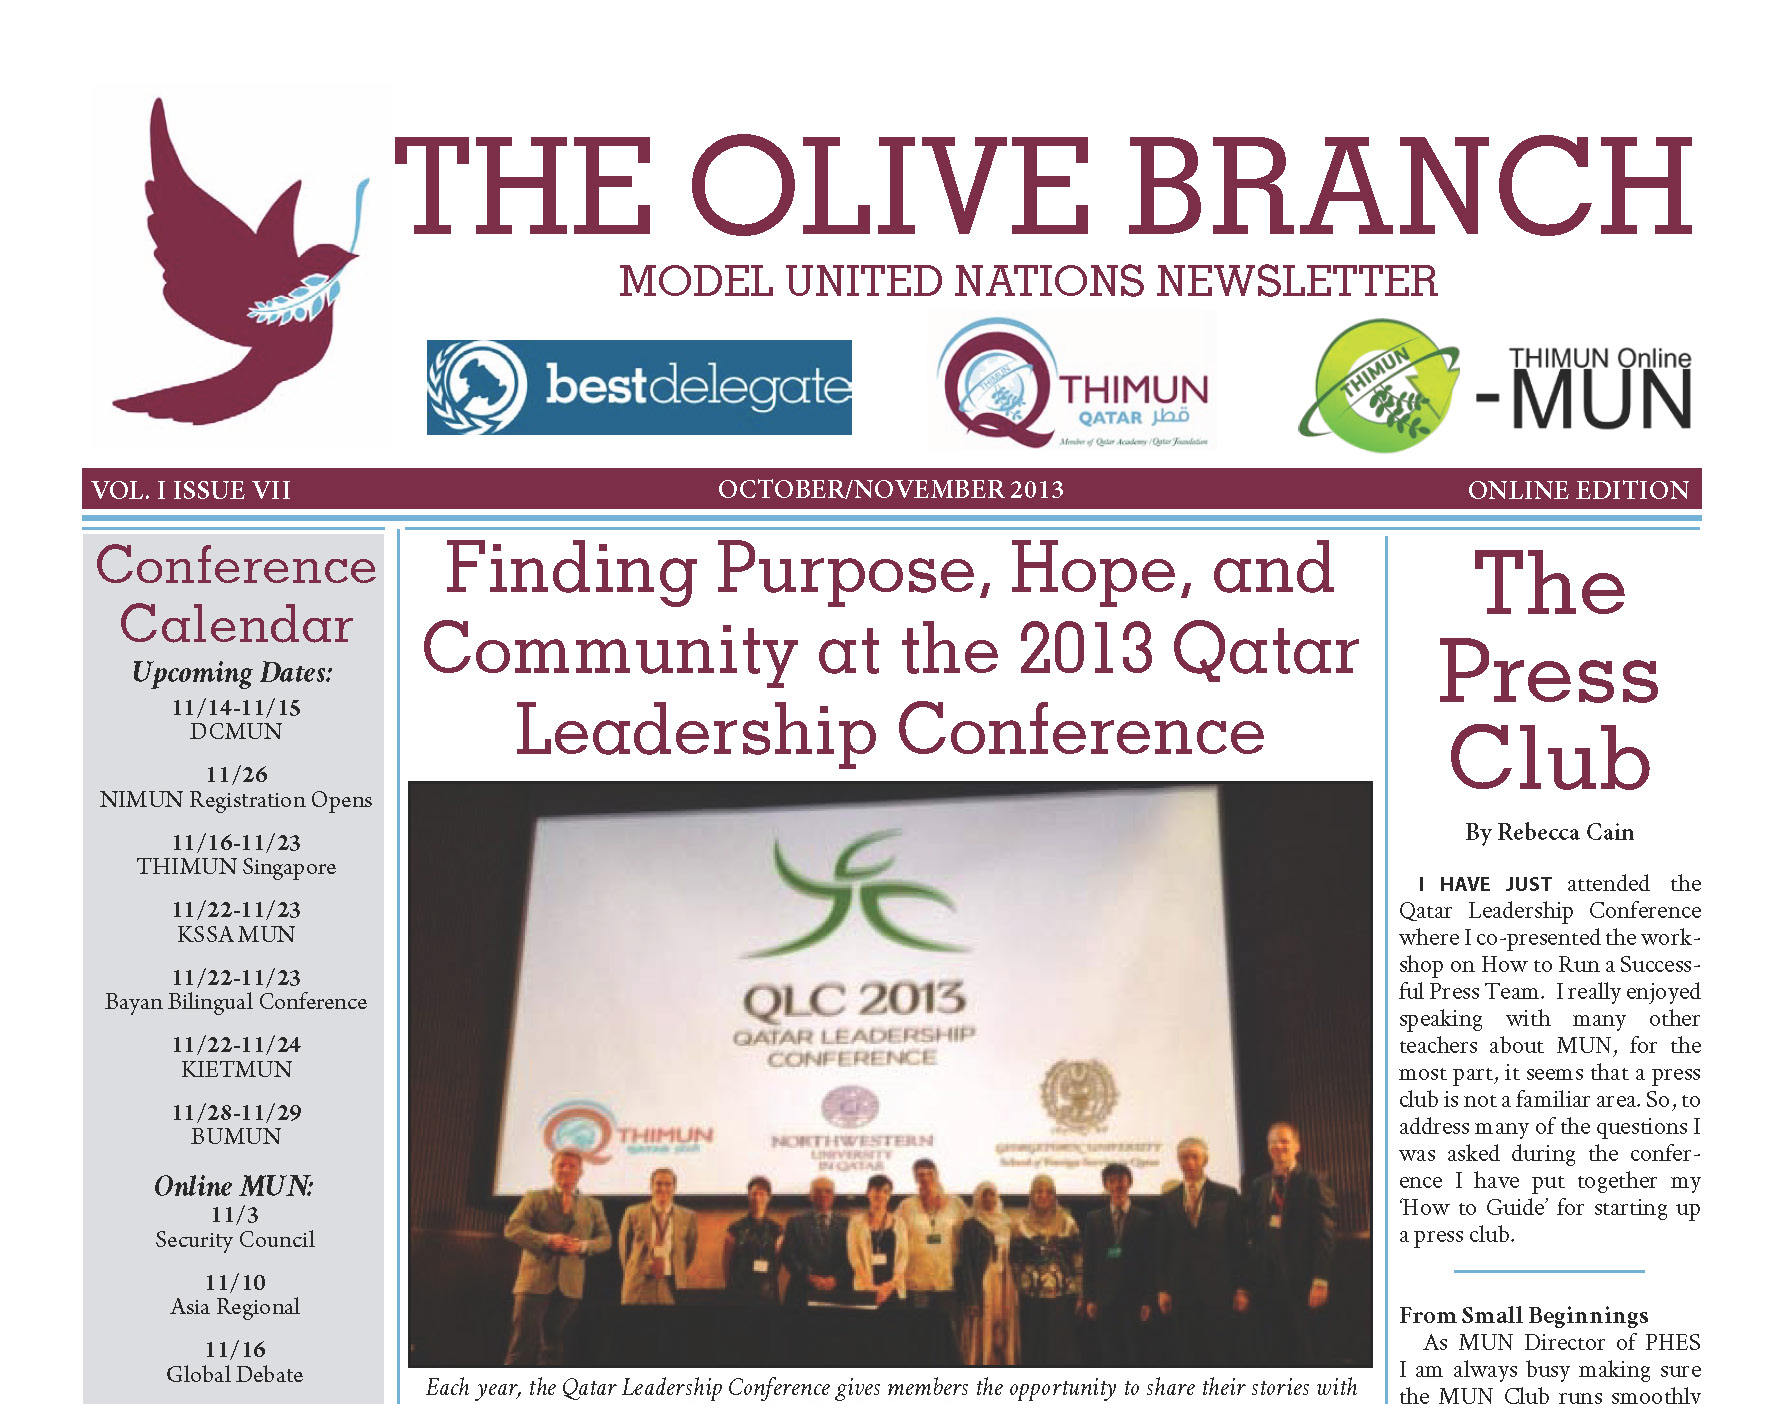 Why an Olive Branch?